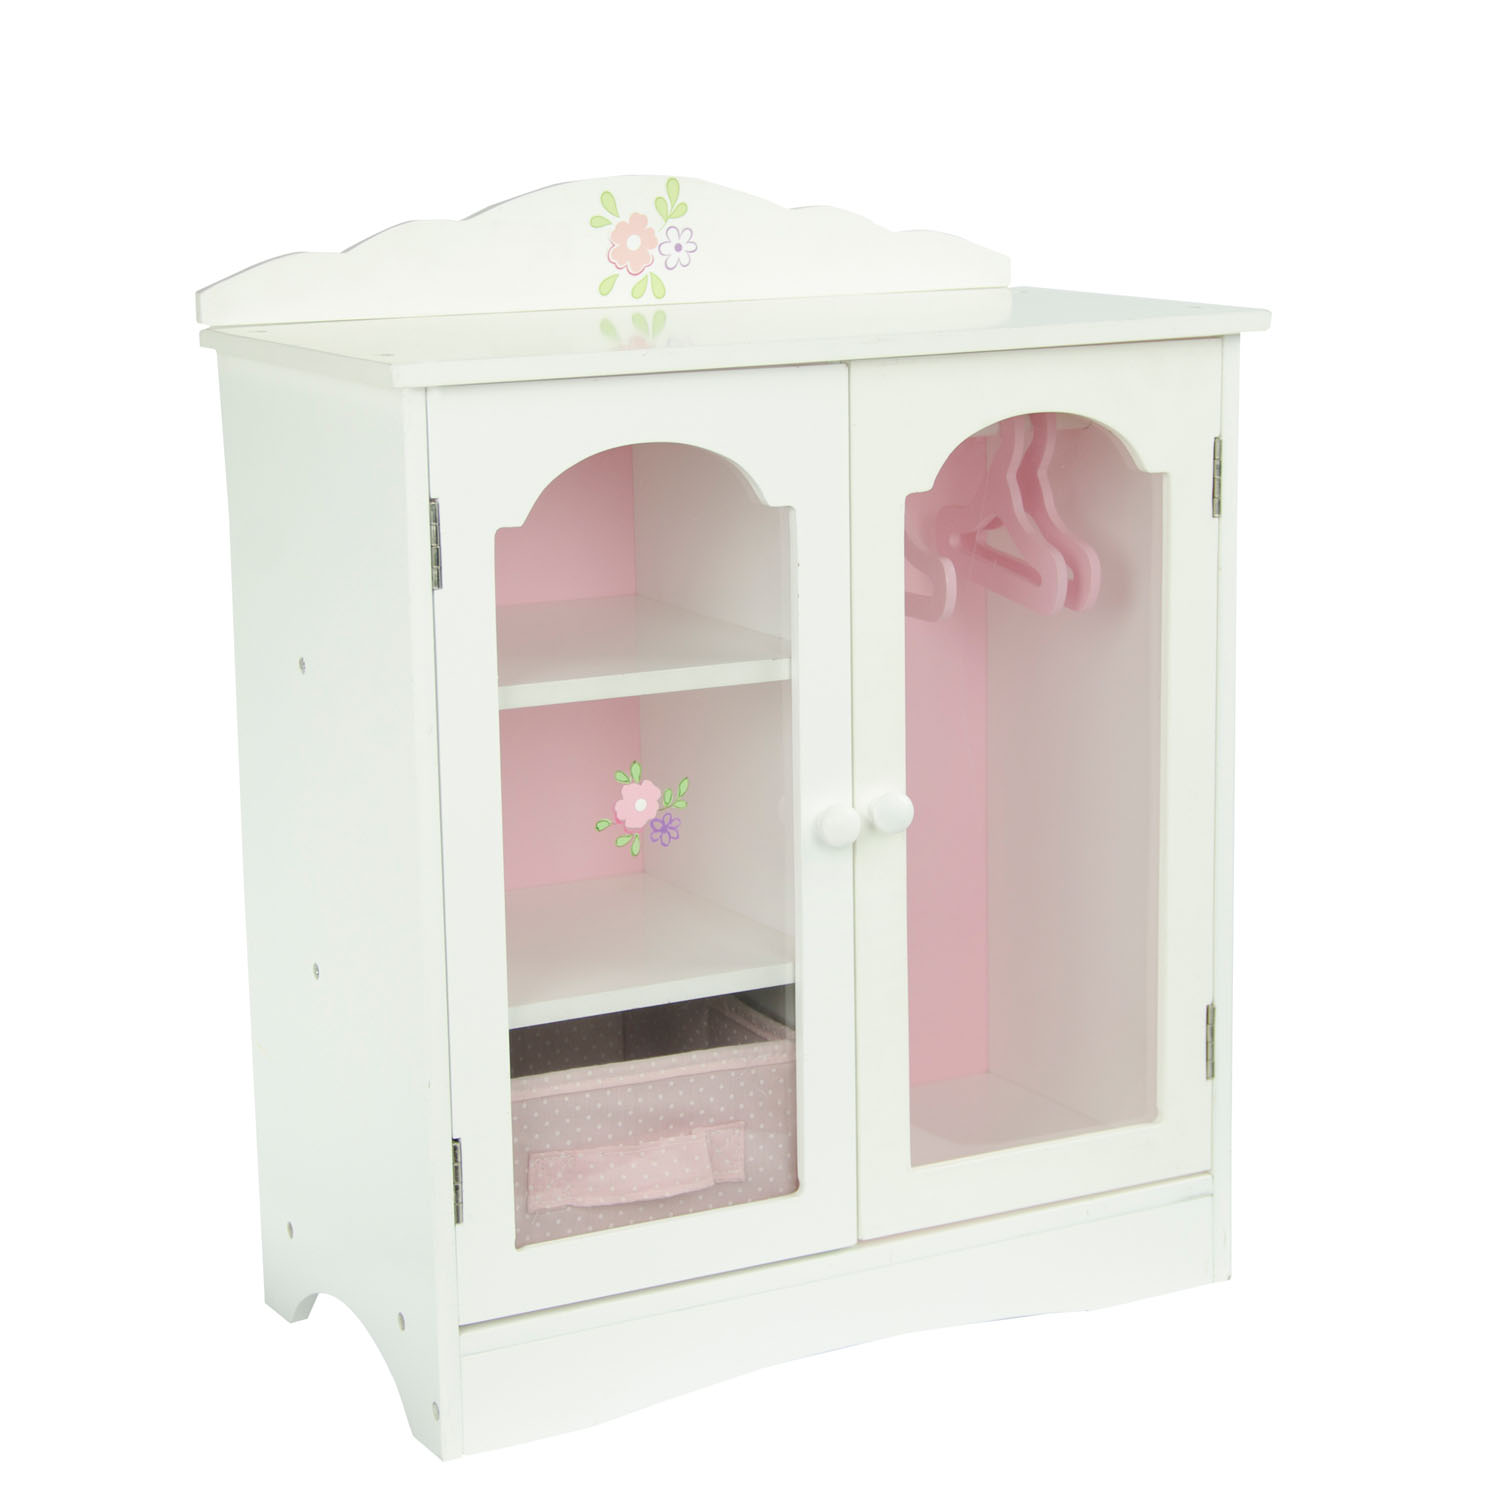 "Olivia's Little World Little Princess 18"" Doll Furniture - Fancy Closet with 3 Hangers"